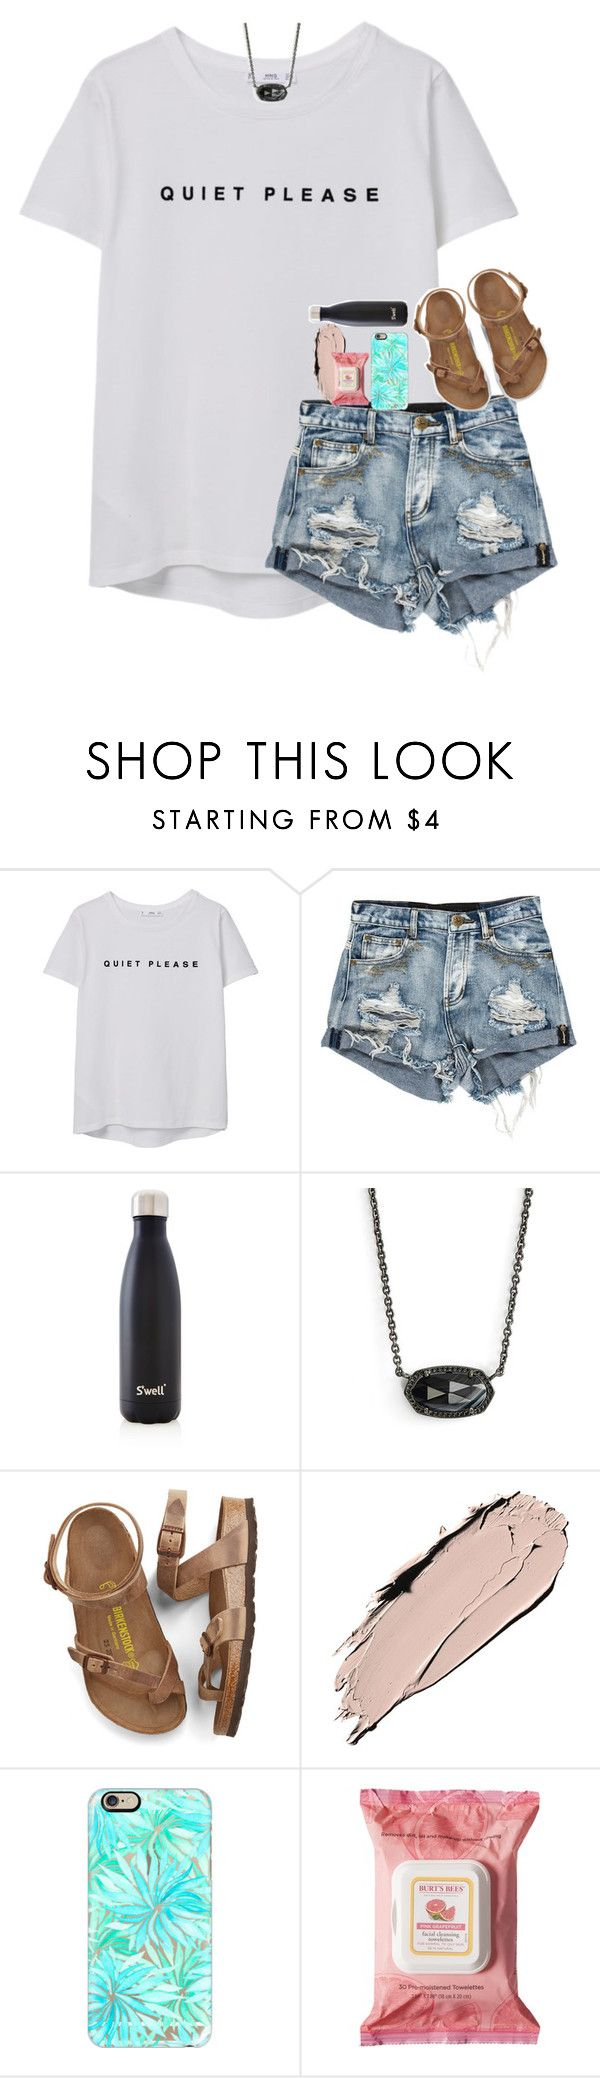 """watching another cinderella story lol"" by hmcdaniel01 ❤ liked on Polyvore featuring MANGO, S'well, Kendra Scott, Birkenstock, Casetify and Burt's Bees"